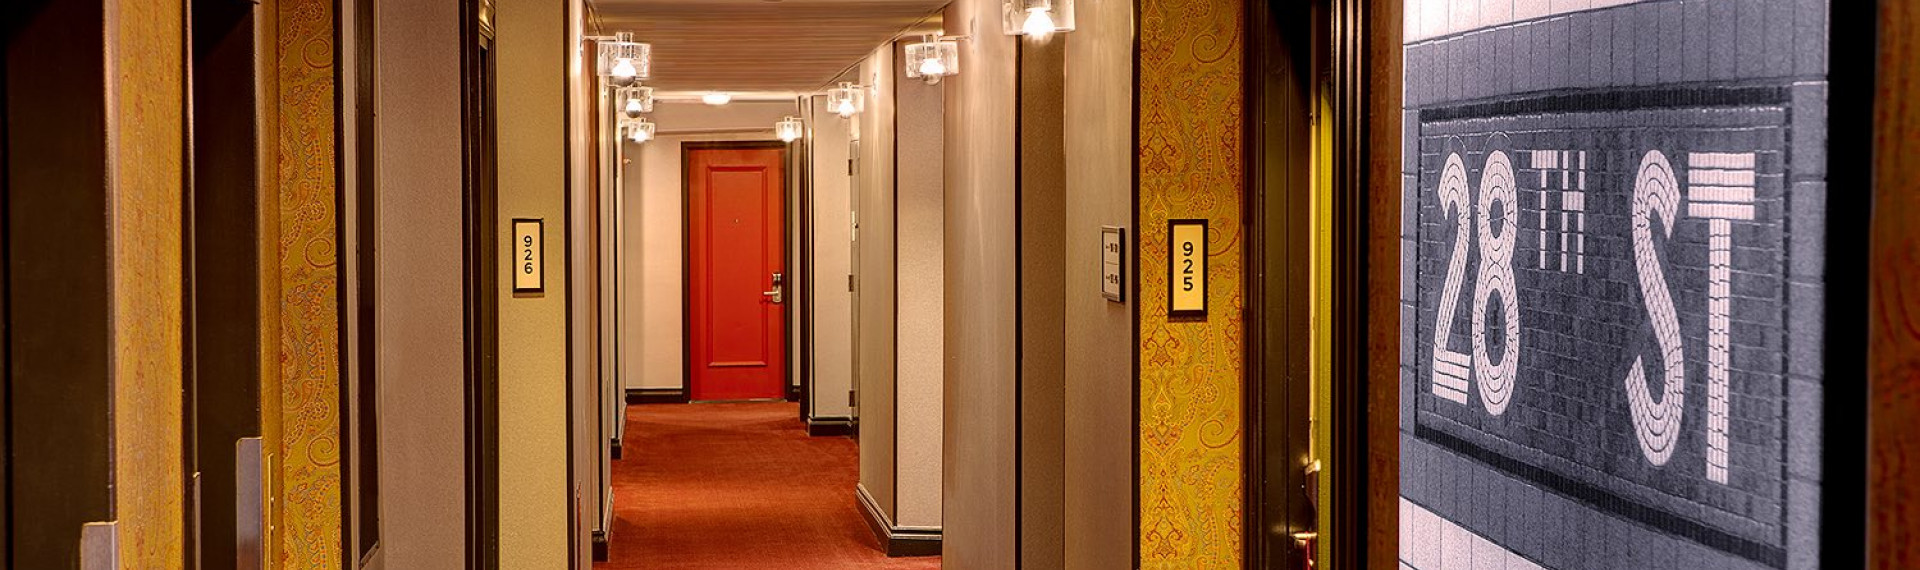 hallway of hotel rooms with gold patterned walls and red doors